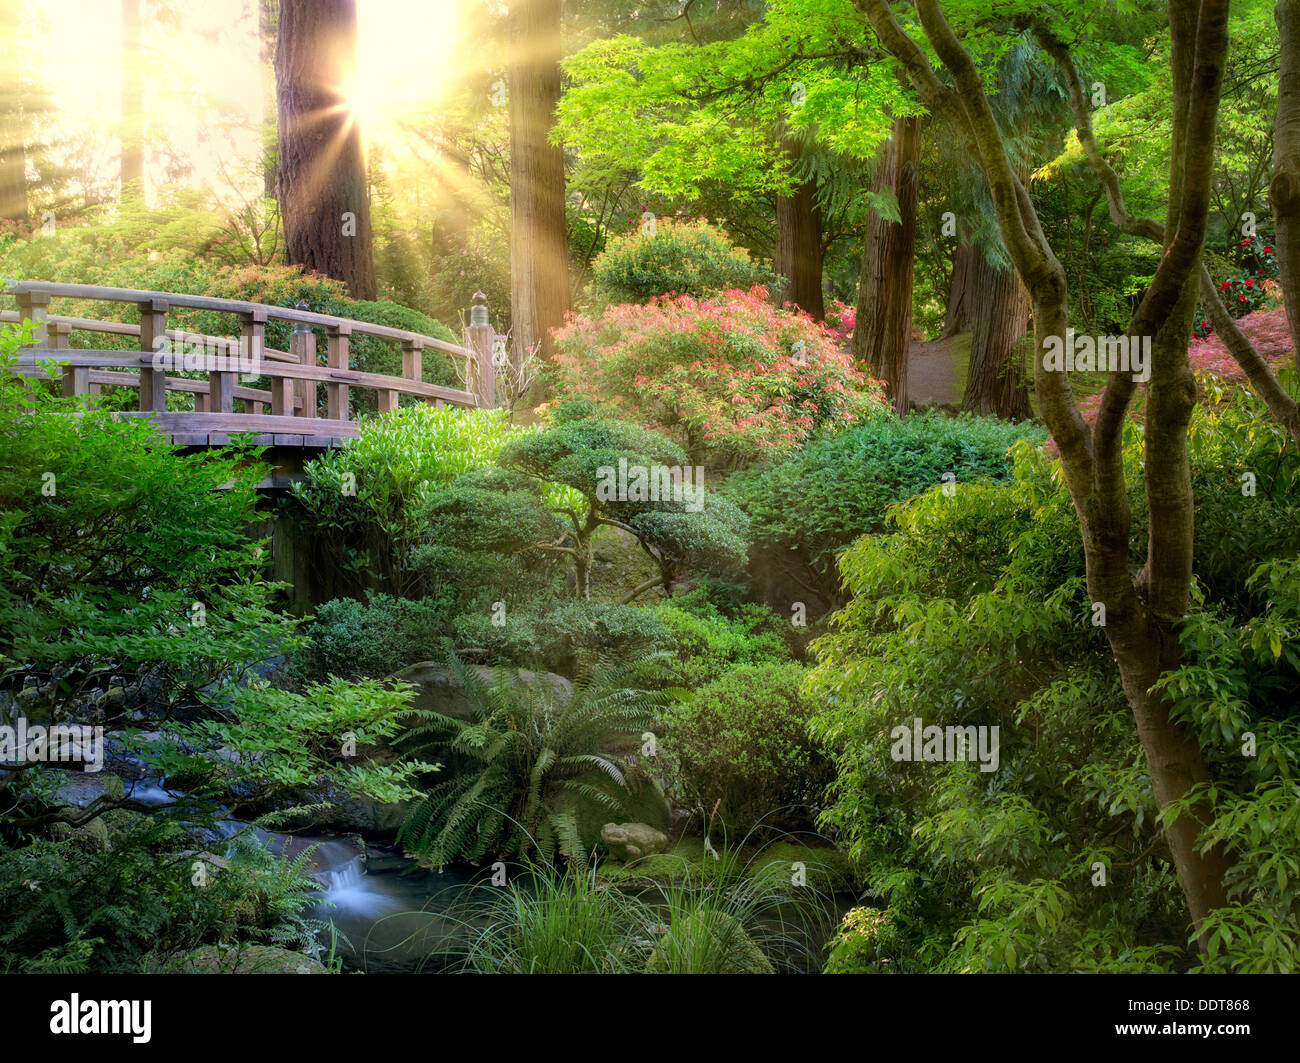 Bridge and stream. Portland Japanese Garden, Oregon - Stock Image